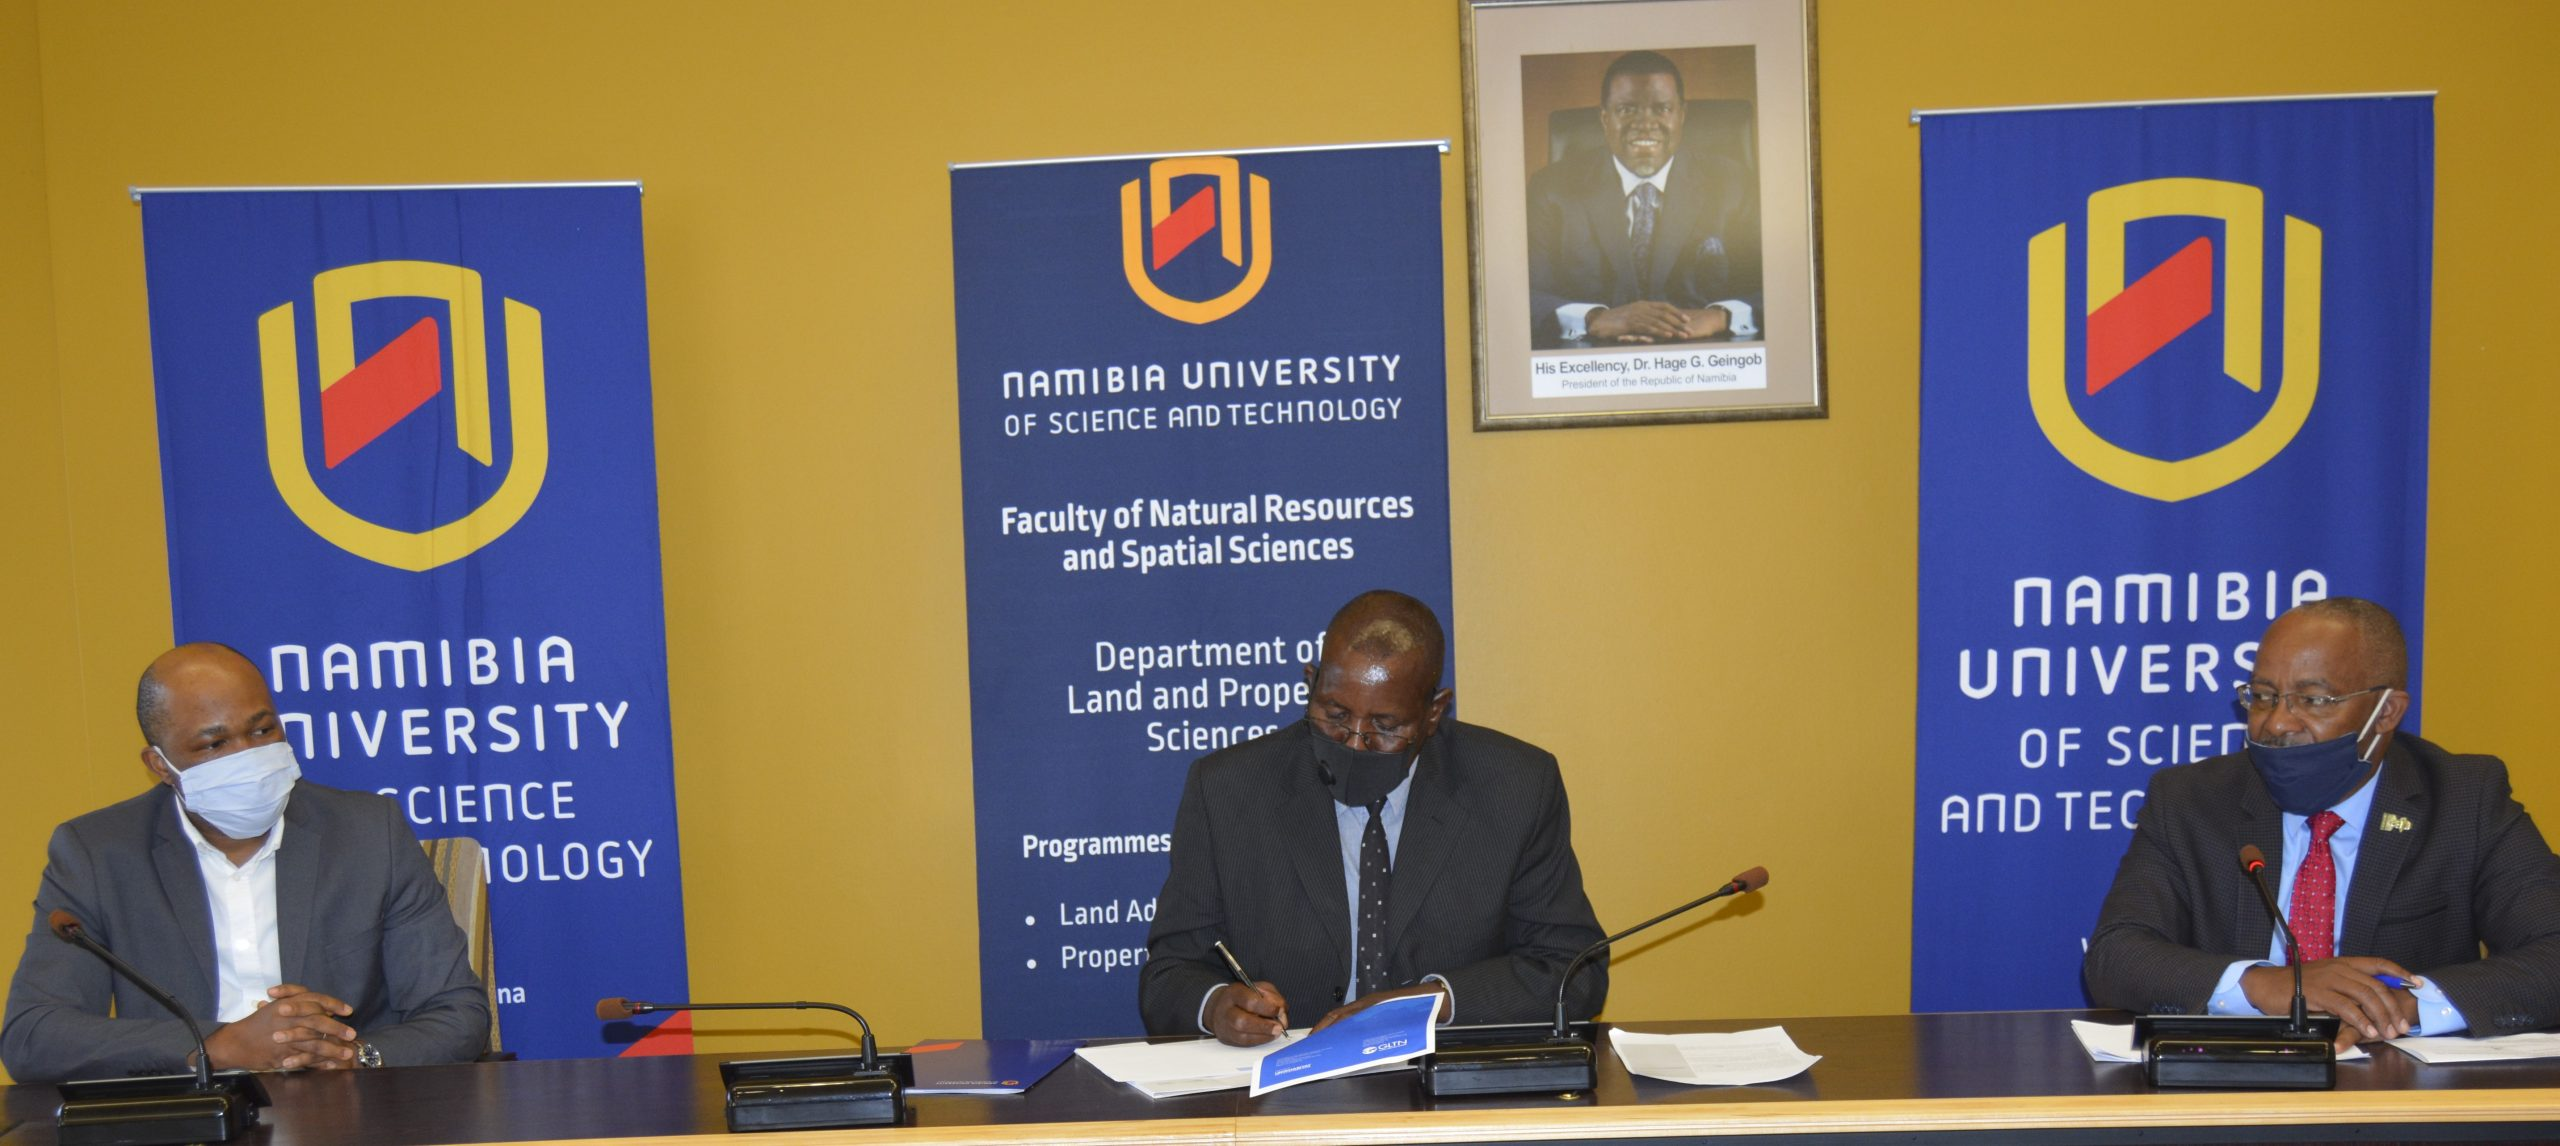 Andrew Niikondo, Acting Vice Chancellor signs the GLTN Partners' Charter witnessed by Prof Mutjinde Katjiua (right) and Prof Uchendu Chigbu (left)